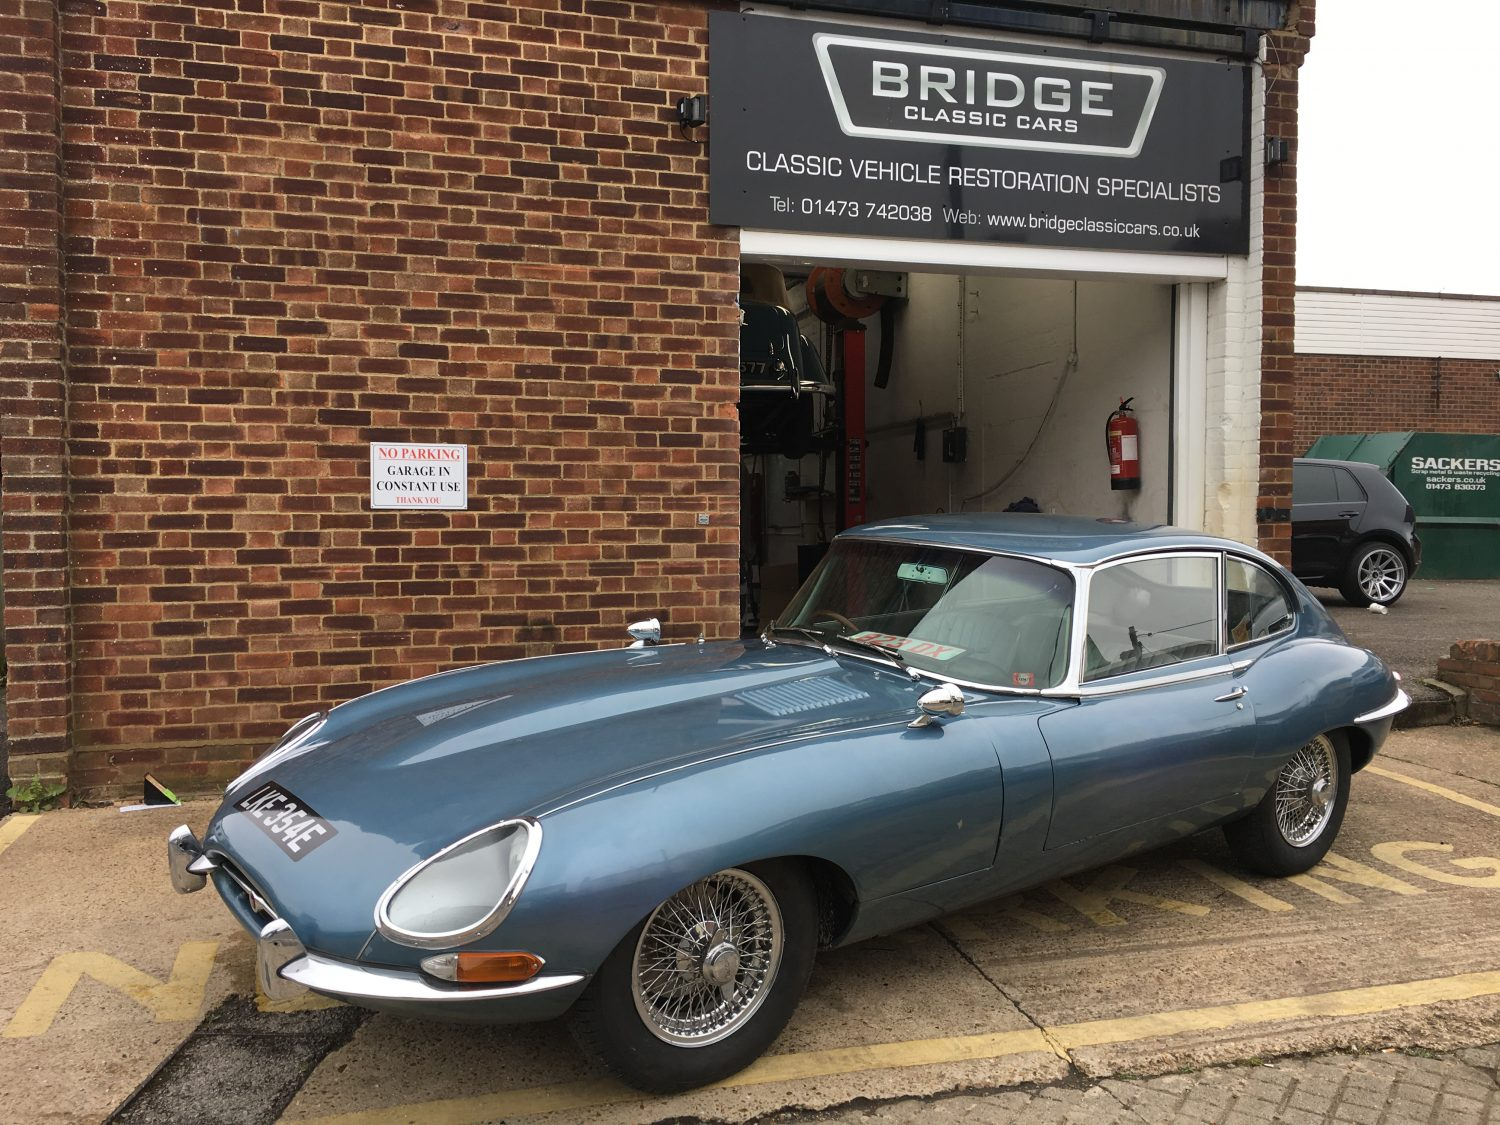 Official Property Of The Uk Once Again Bridge Classic Cars